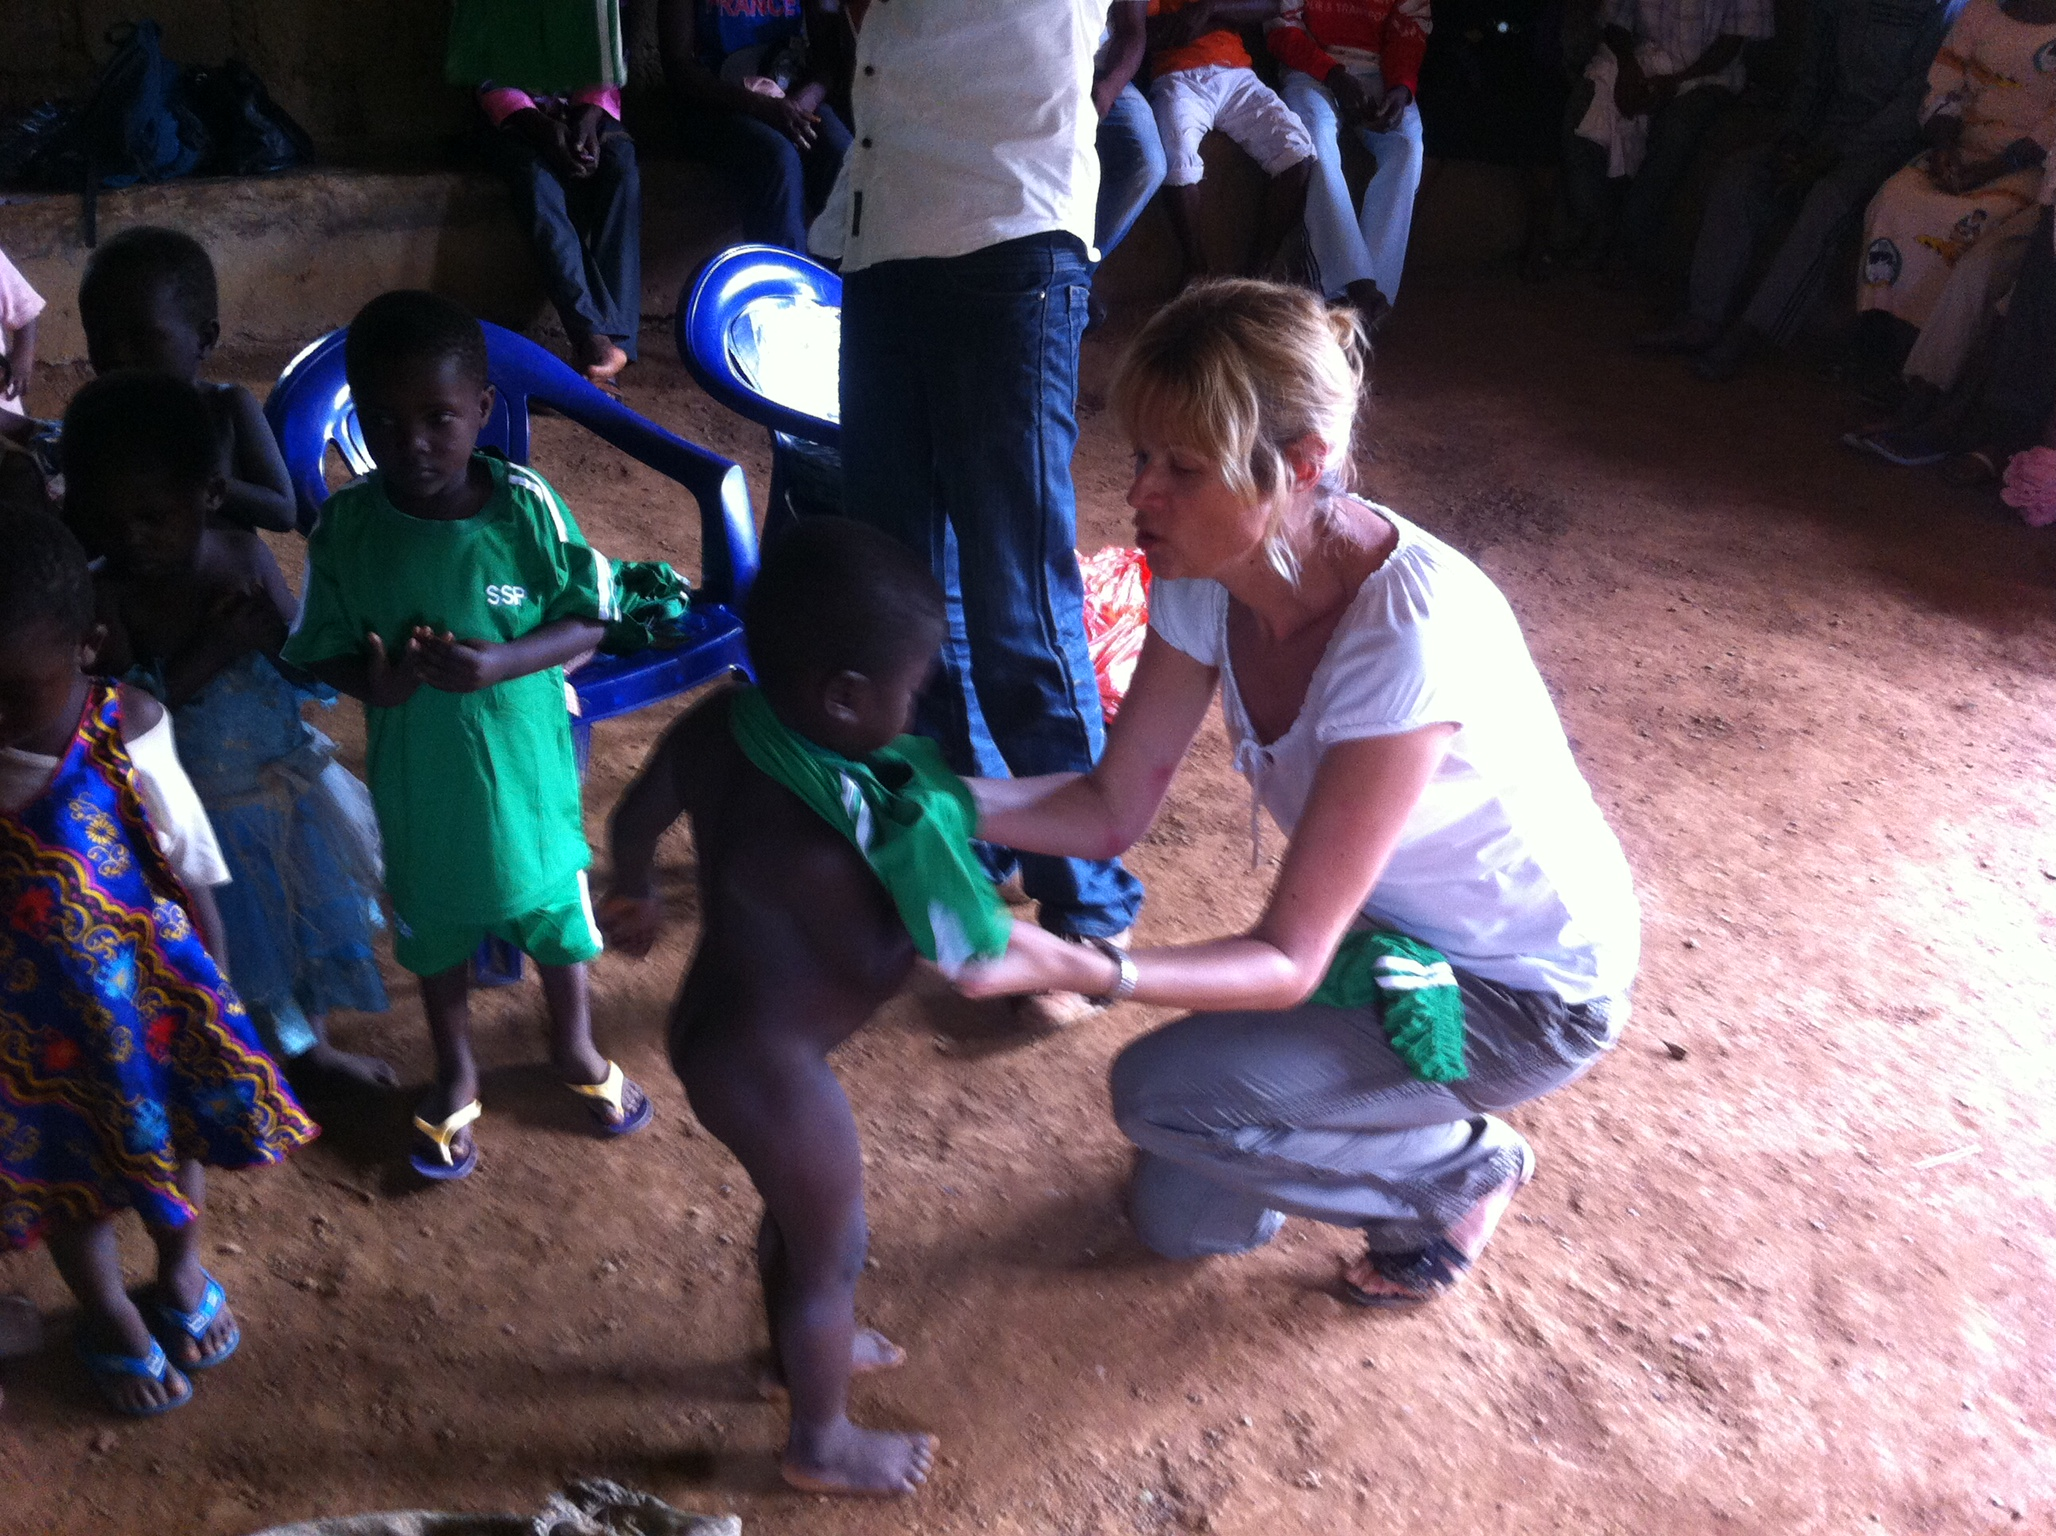 Nicky giving children their new systems